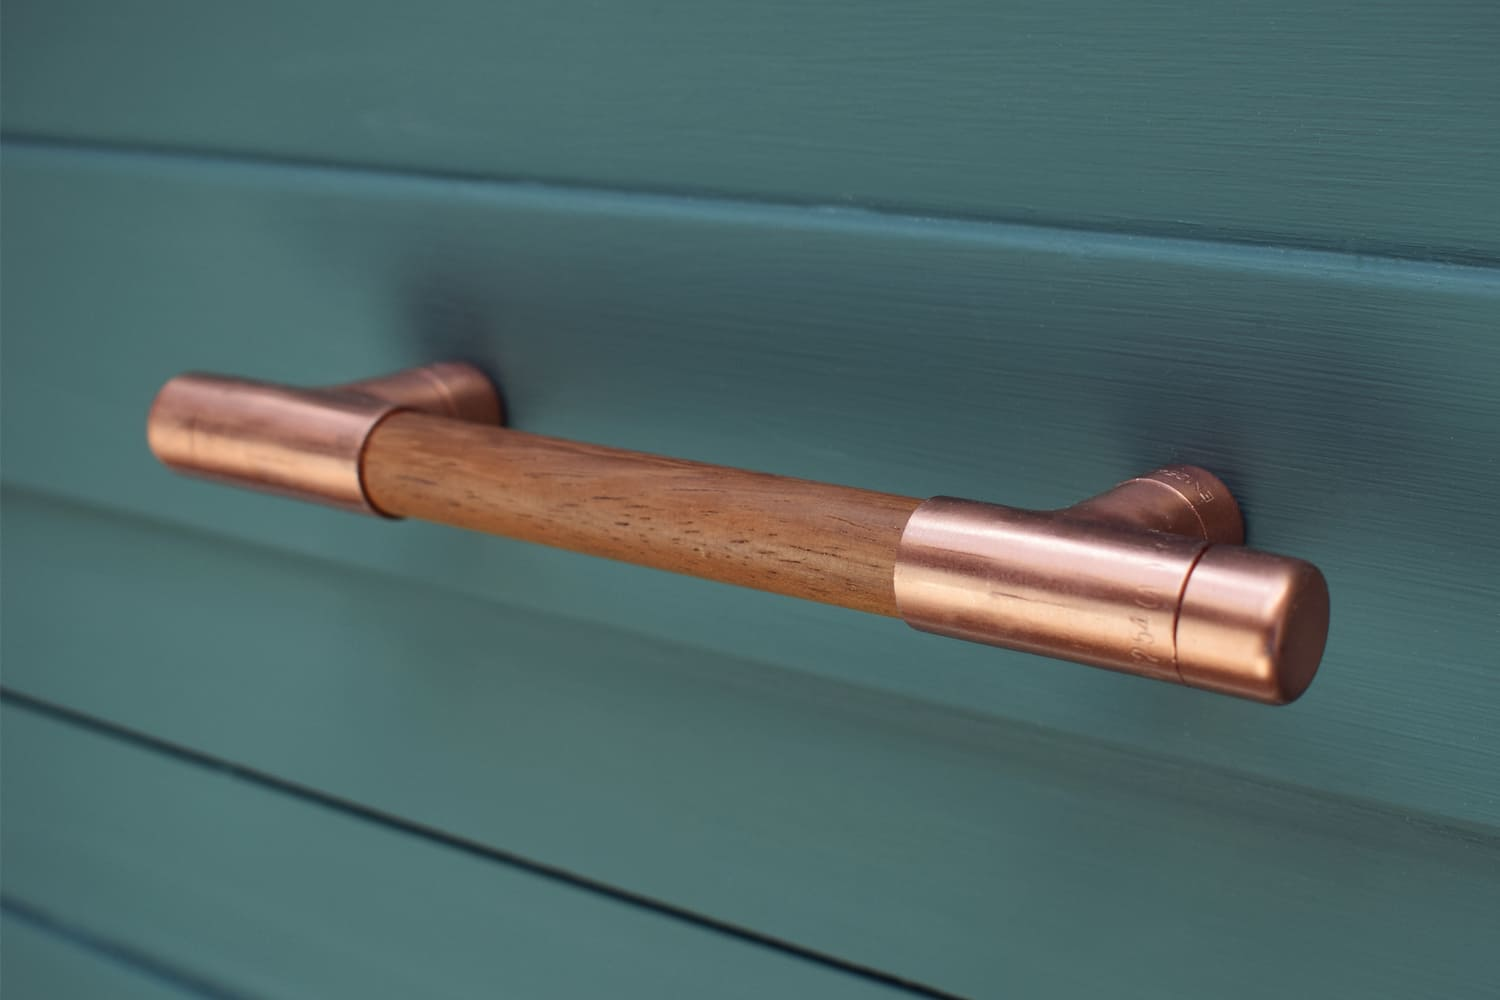 Proper Copper Design - Copper Sapele Wood and Copper Pull Handle Cabinet Furniture - Drawers - Handles - Knobs and Pulls